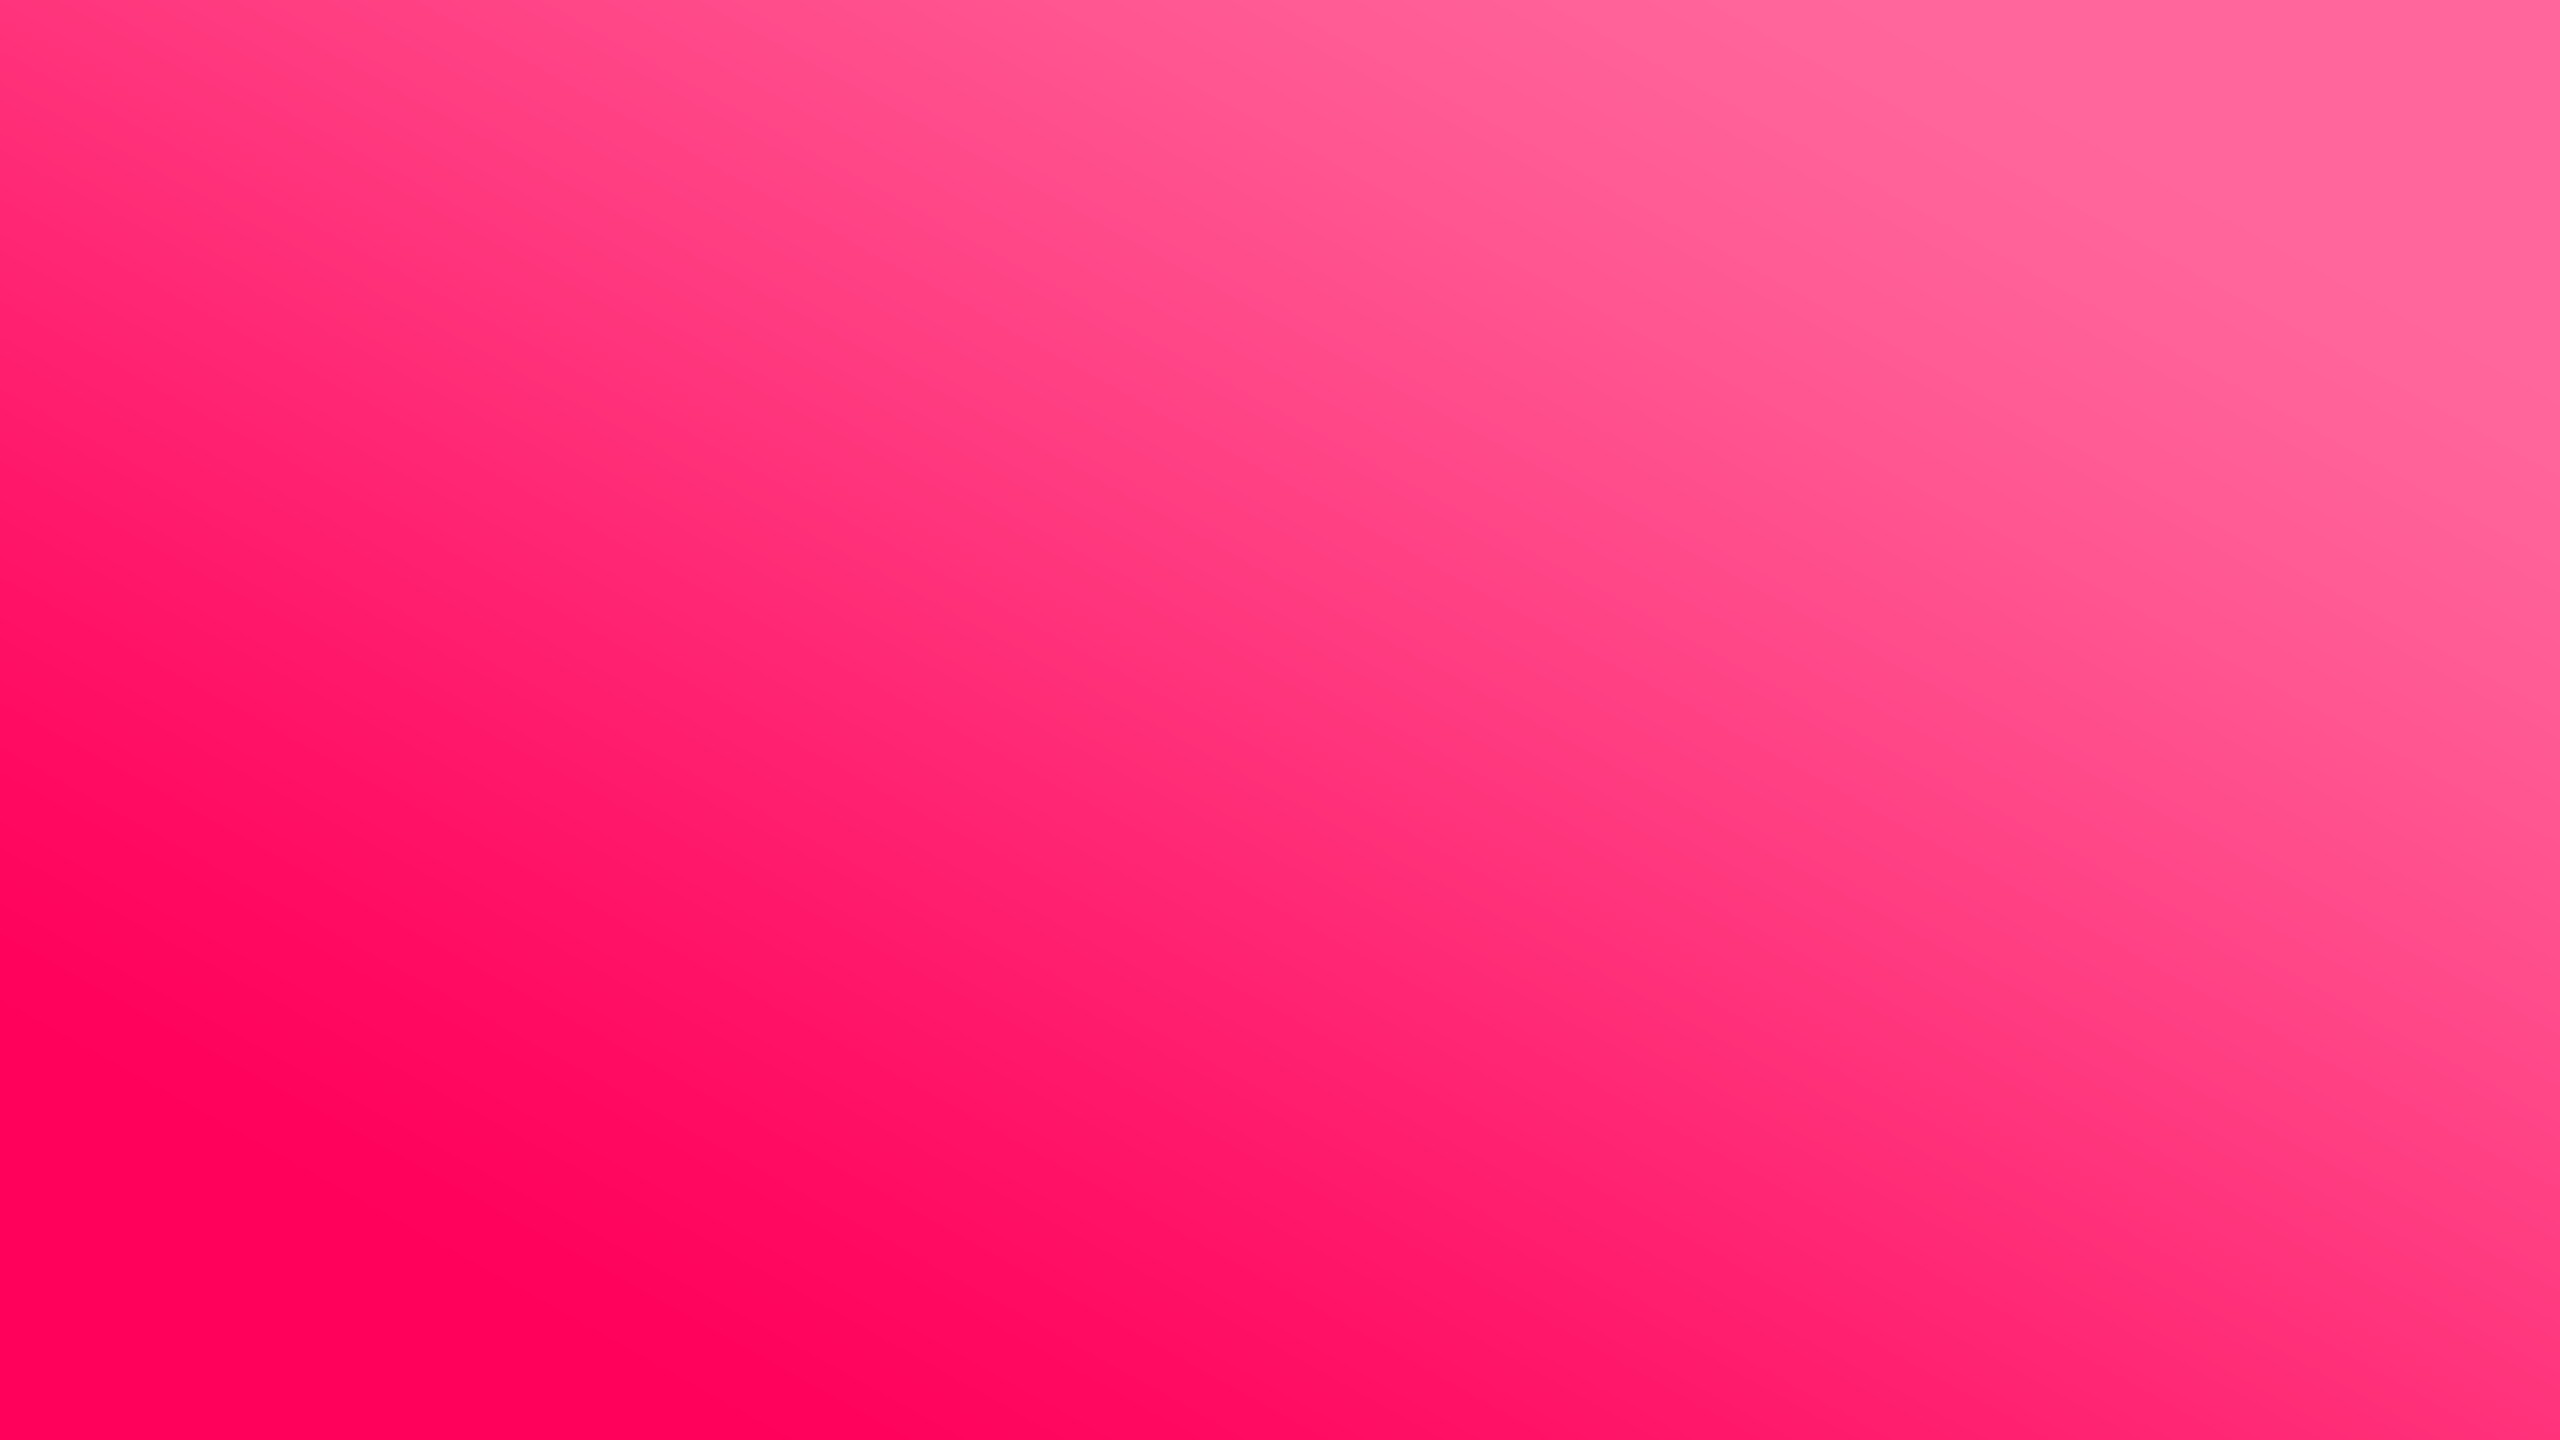 Pink Color Wallpapers Free Download Group  2560x1440